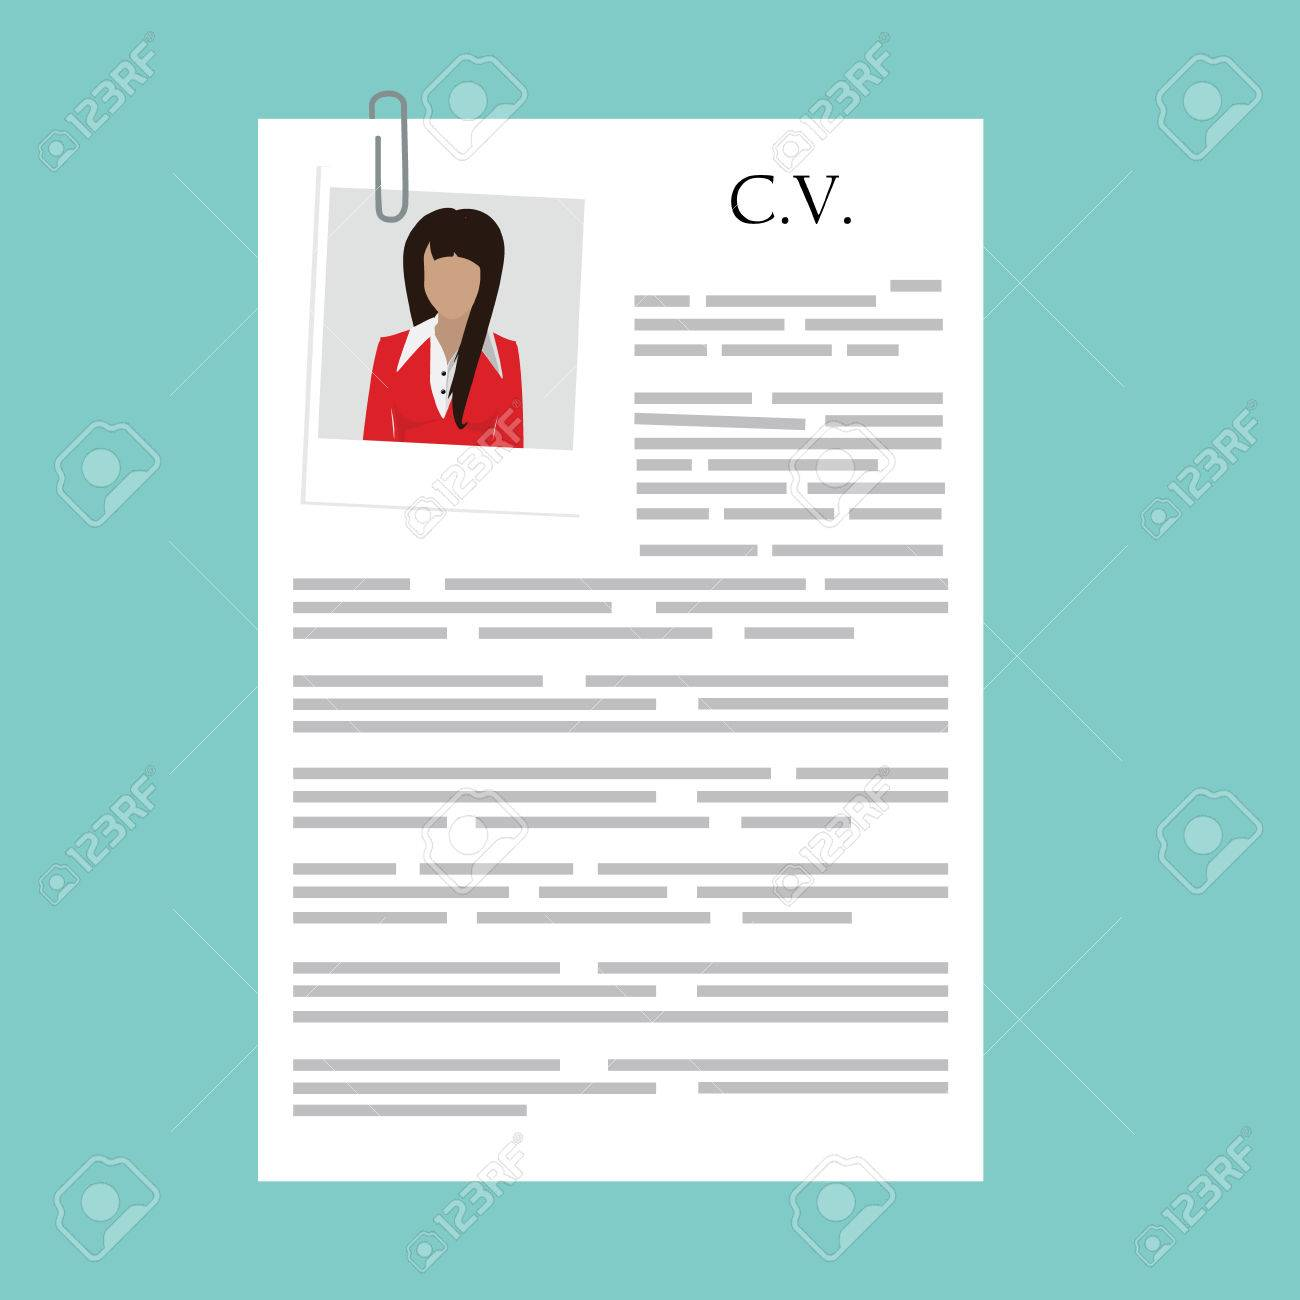 vector illustration curriculum vitae w polaroid photo vector vector illustration curriculum vitae w polaroid photo cv on blue background job interview concept cv resume